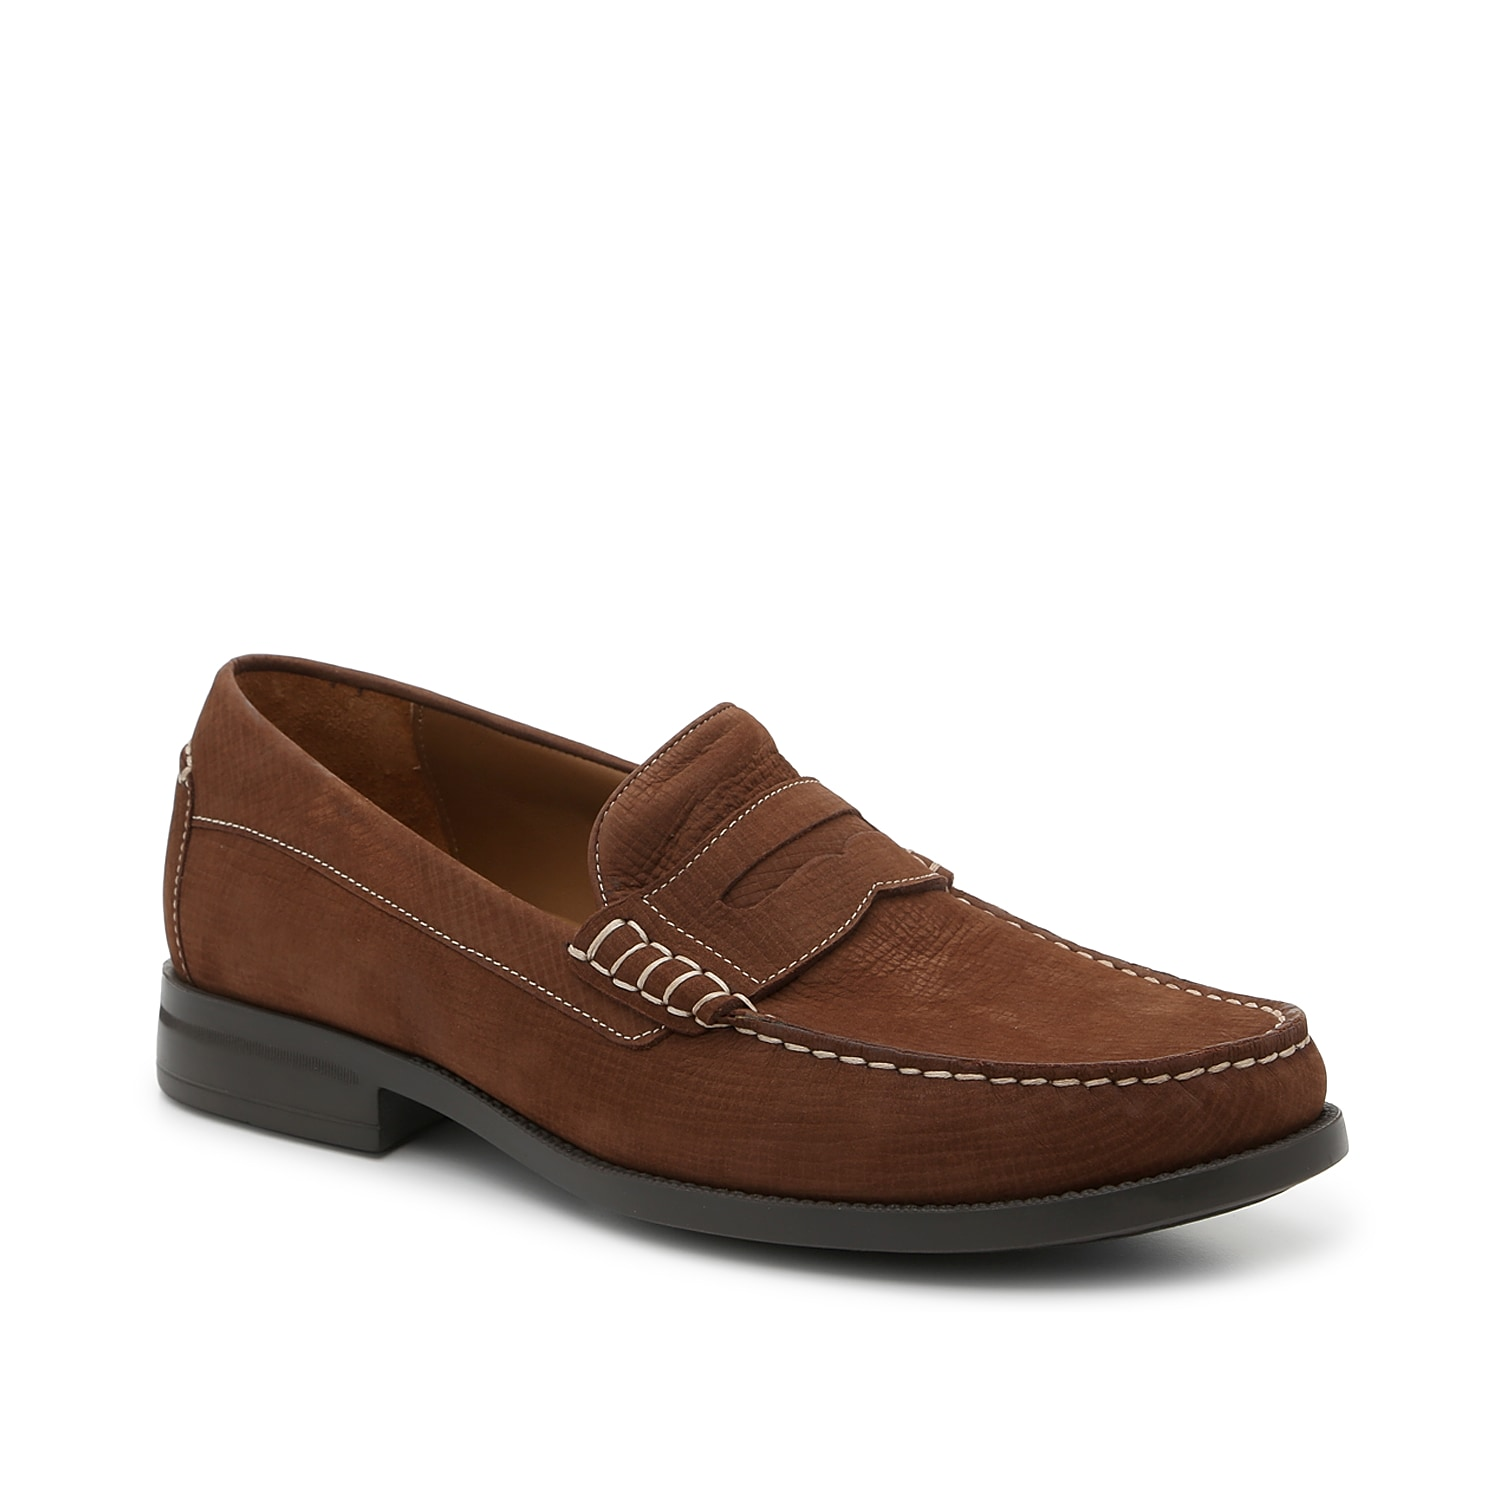 Redefine your shoe collection with the Chadwell loafer from Johnston & Murphy. This slip-on features a textural nubuck leather upper and penny keeper details to pair with your everyday wardrobe!